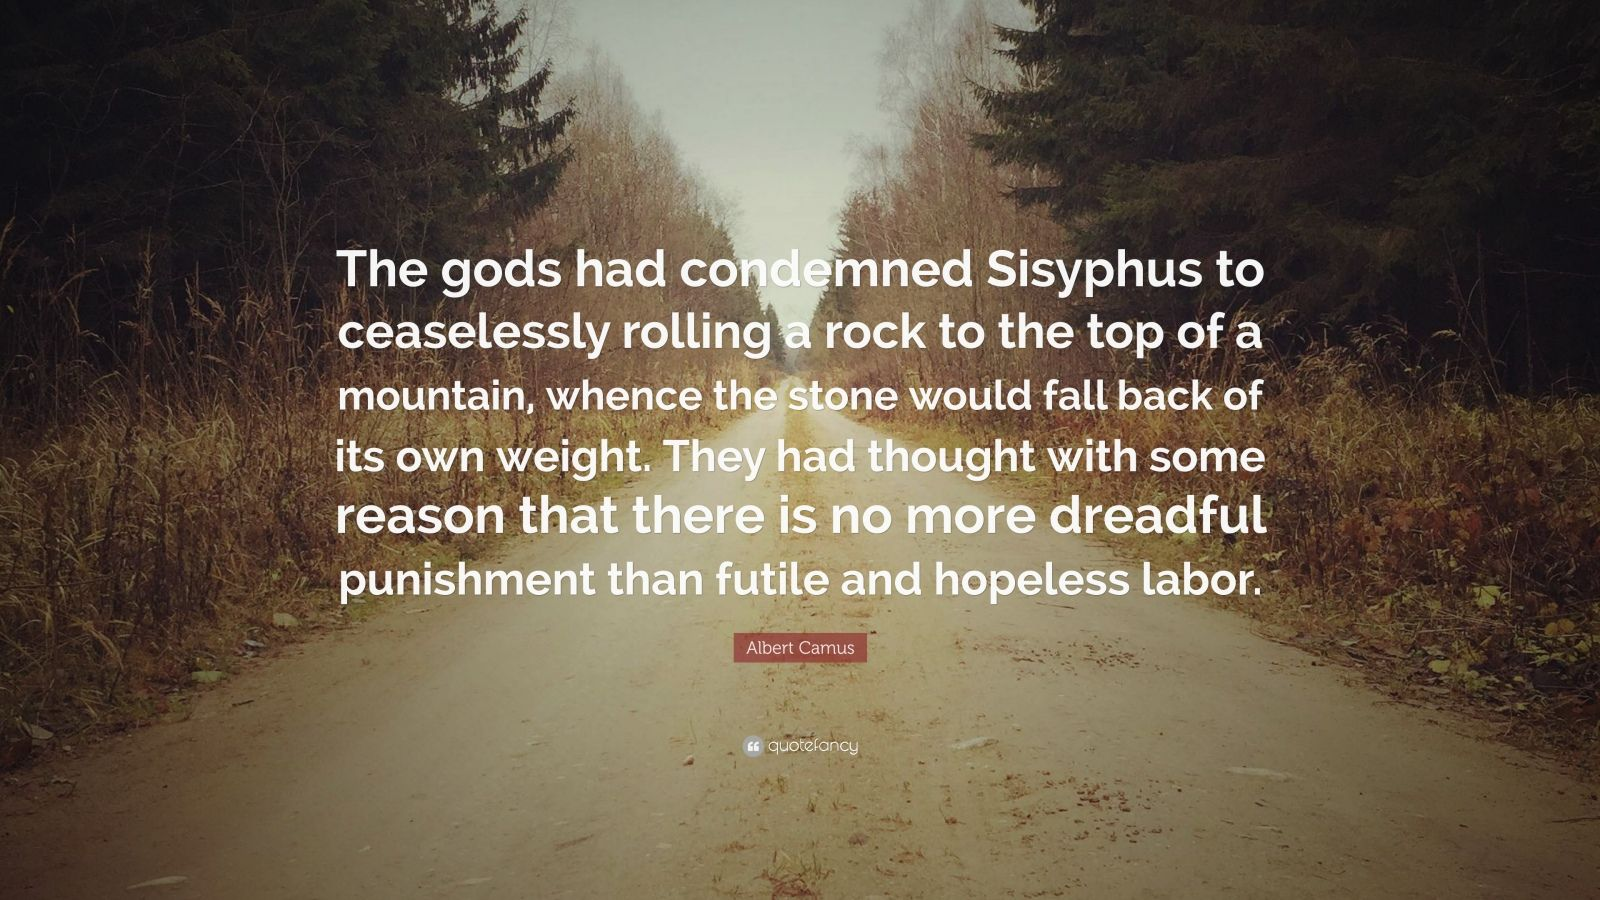 """Albert Camus Quote: """"The gods had condemned Sisyphus to ceaselessly rolling a rock to the top of a mountain, whence the stone would fall back of its own weight. They had thought with some reason that there is no more dreadful punishment than futile and hopeless labor."""""""